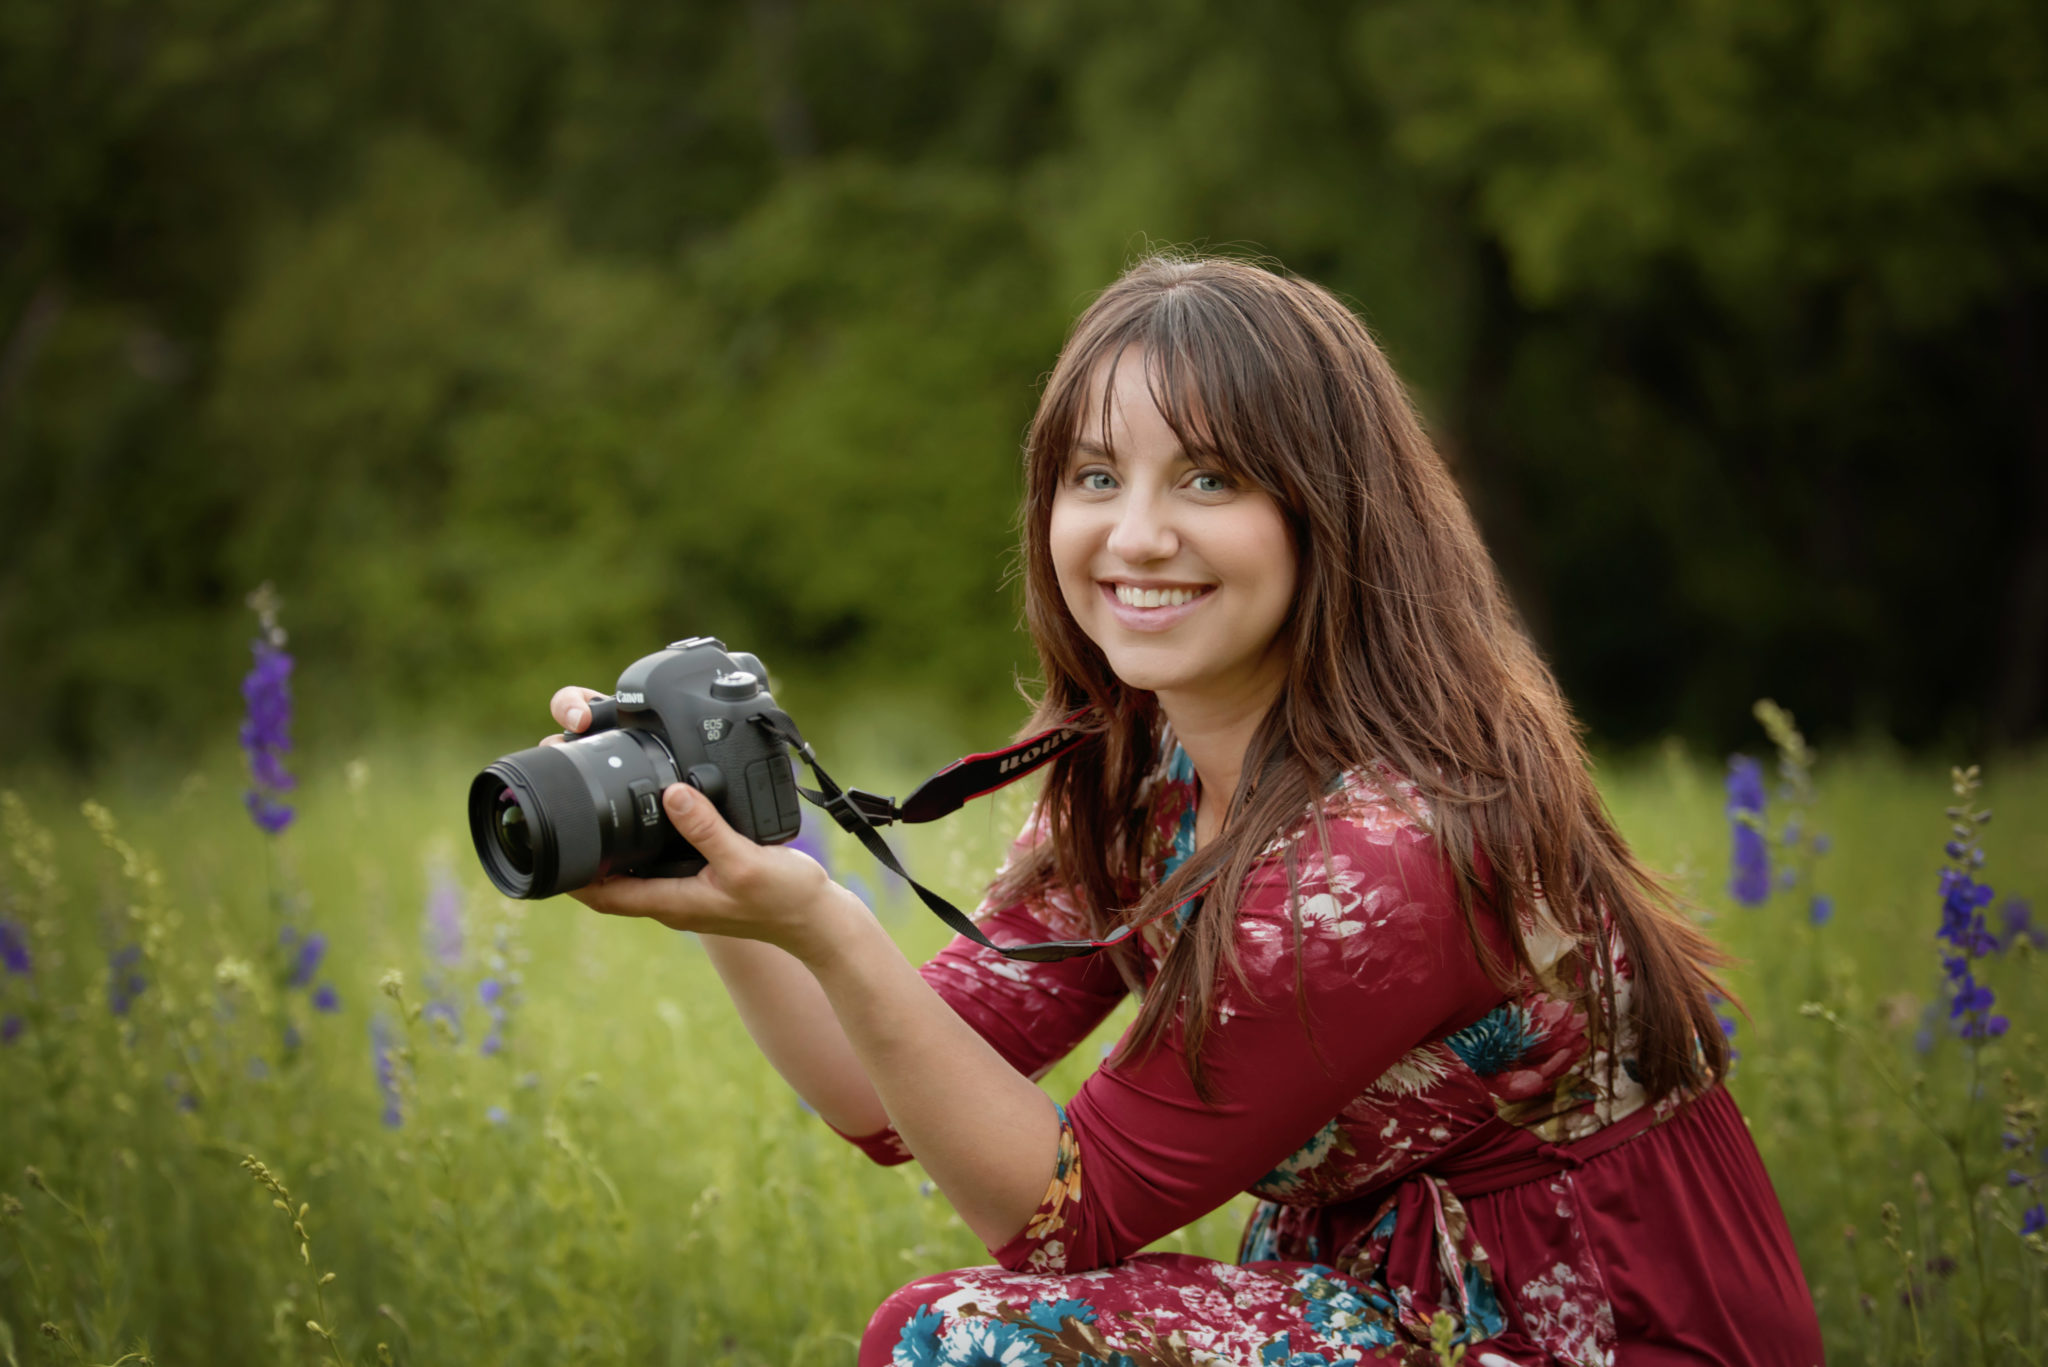 Dallas newborn and maternity photographer Laura Levitan of Mod L Photography posing in wildflower field